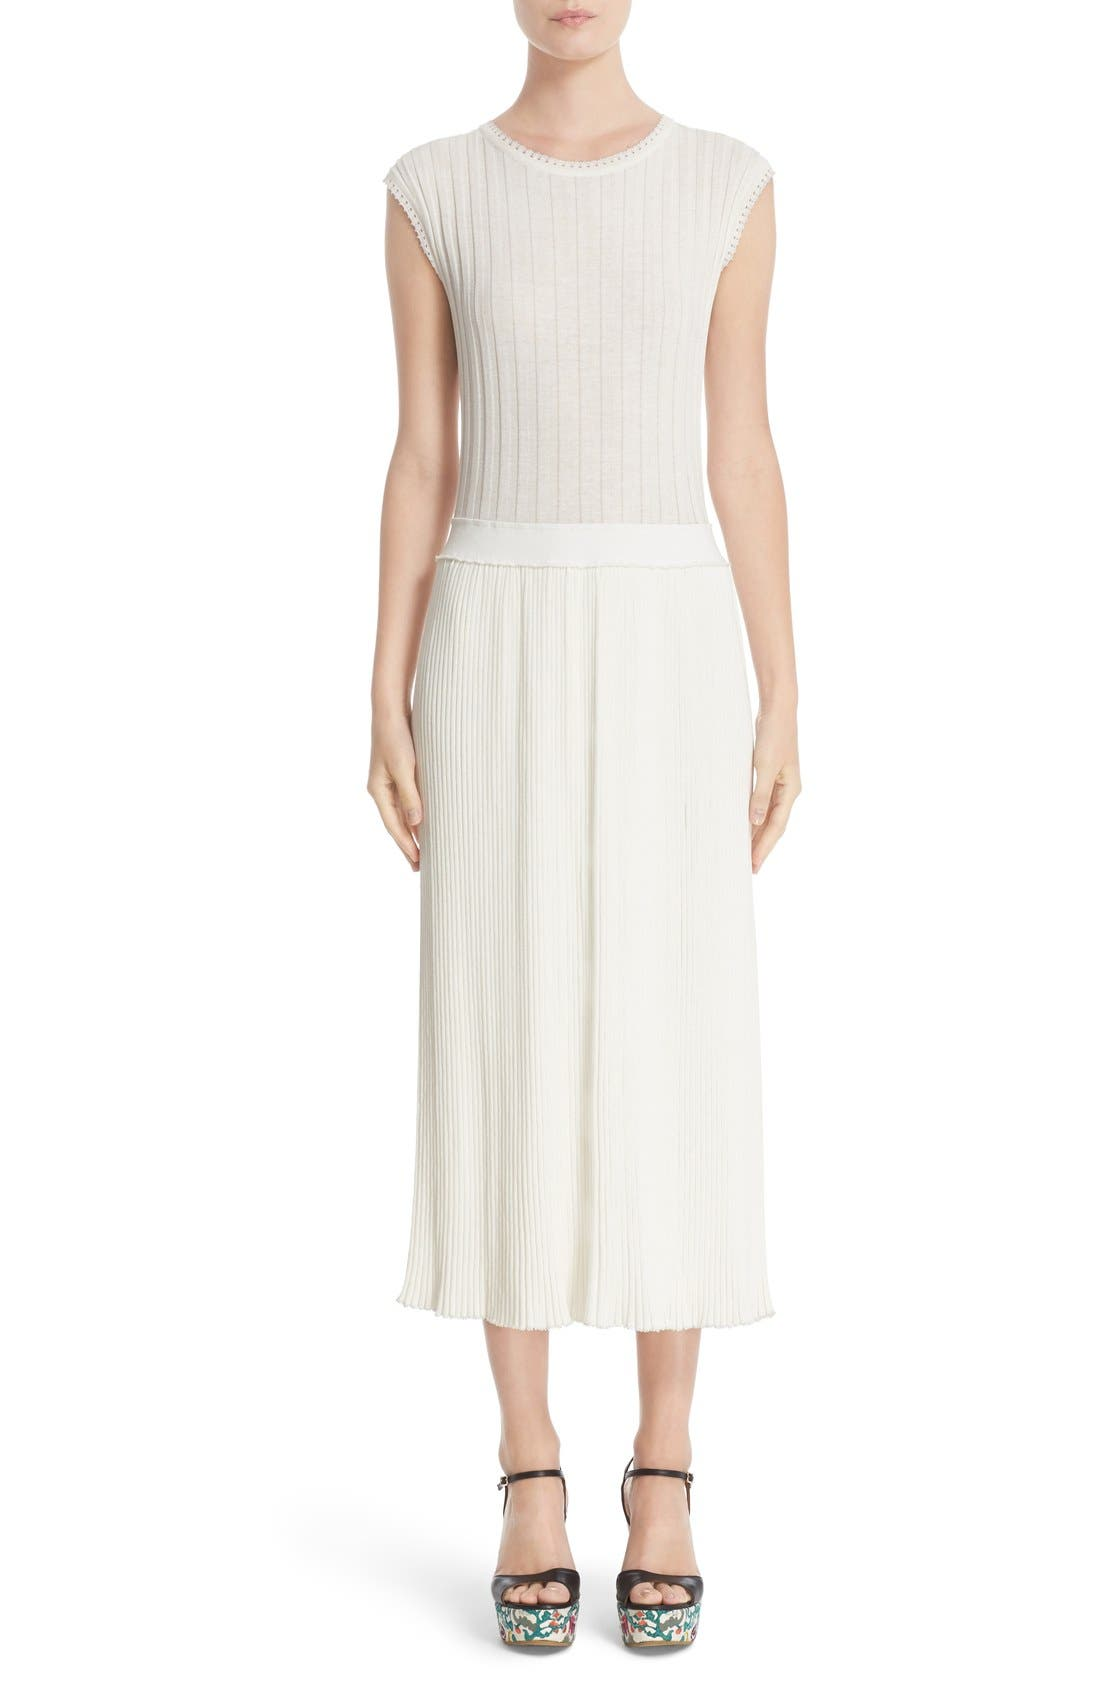 ADAM LIPPES Rib Knit Cotton Blend Dress